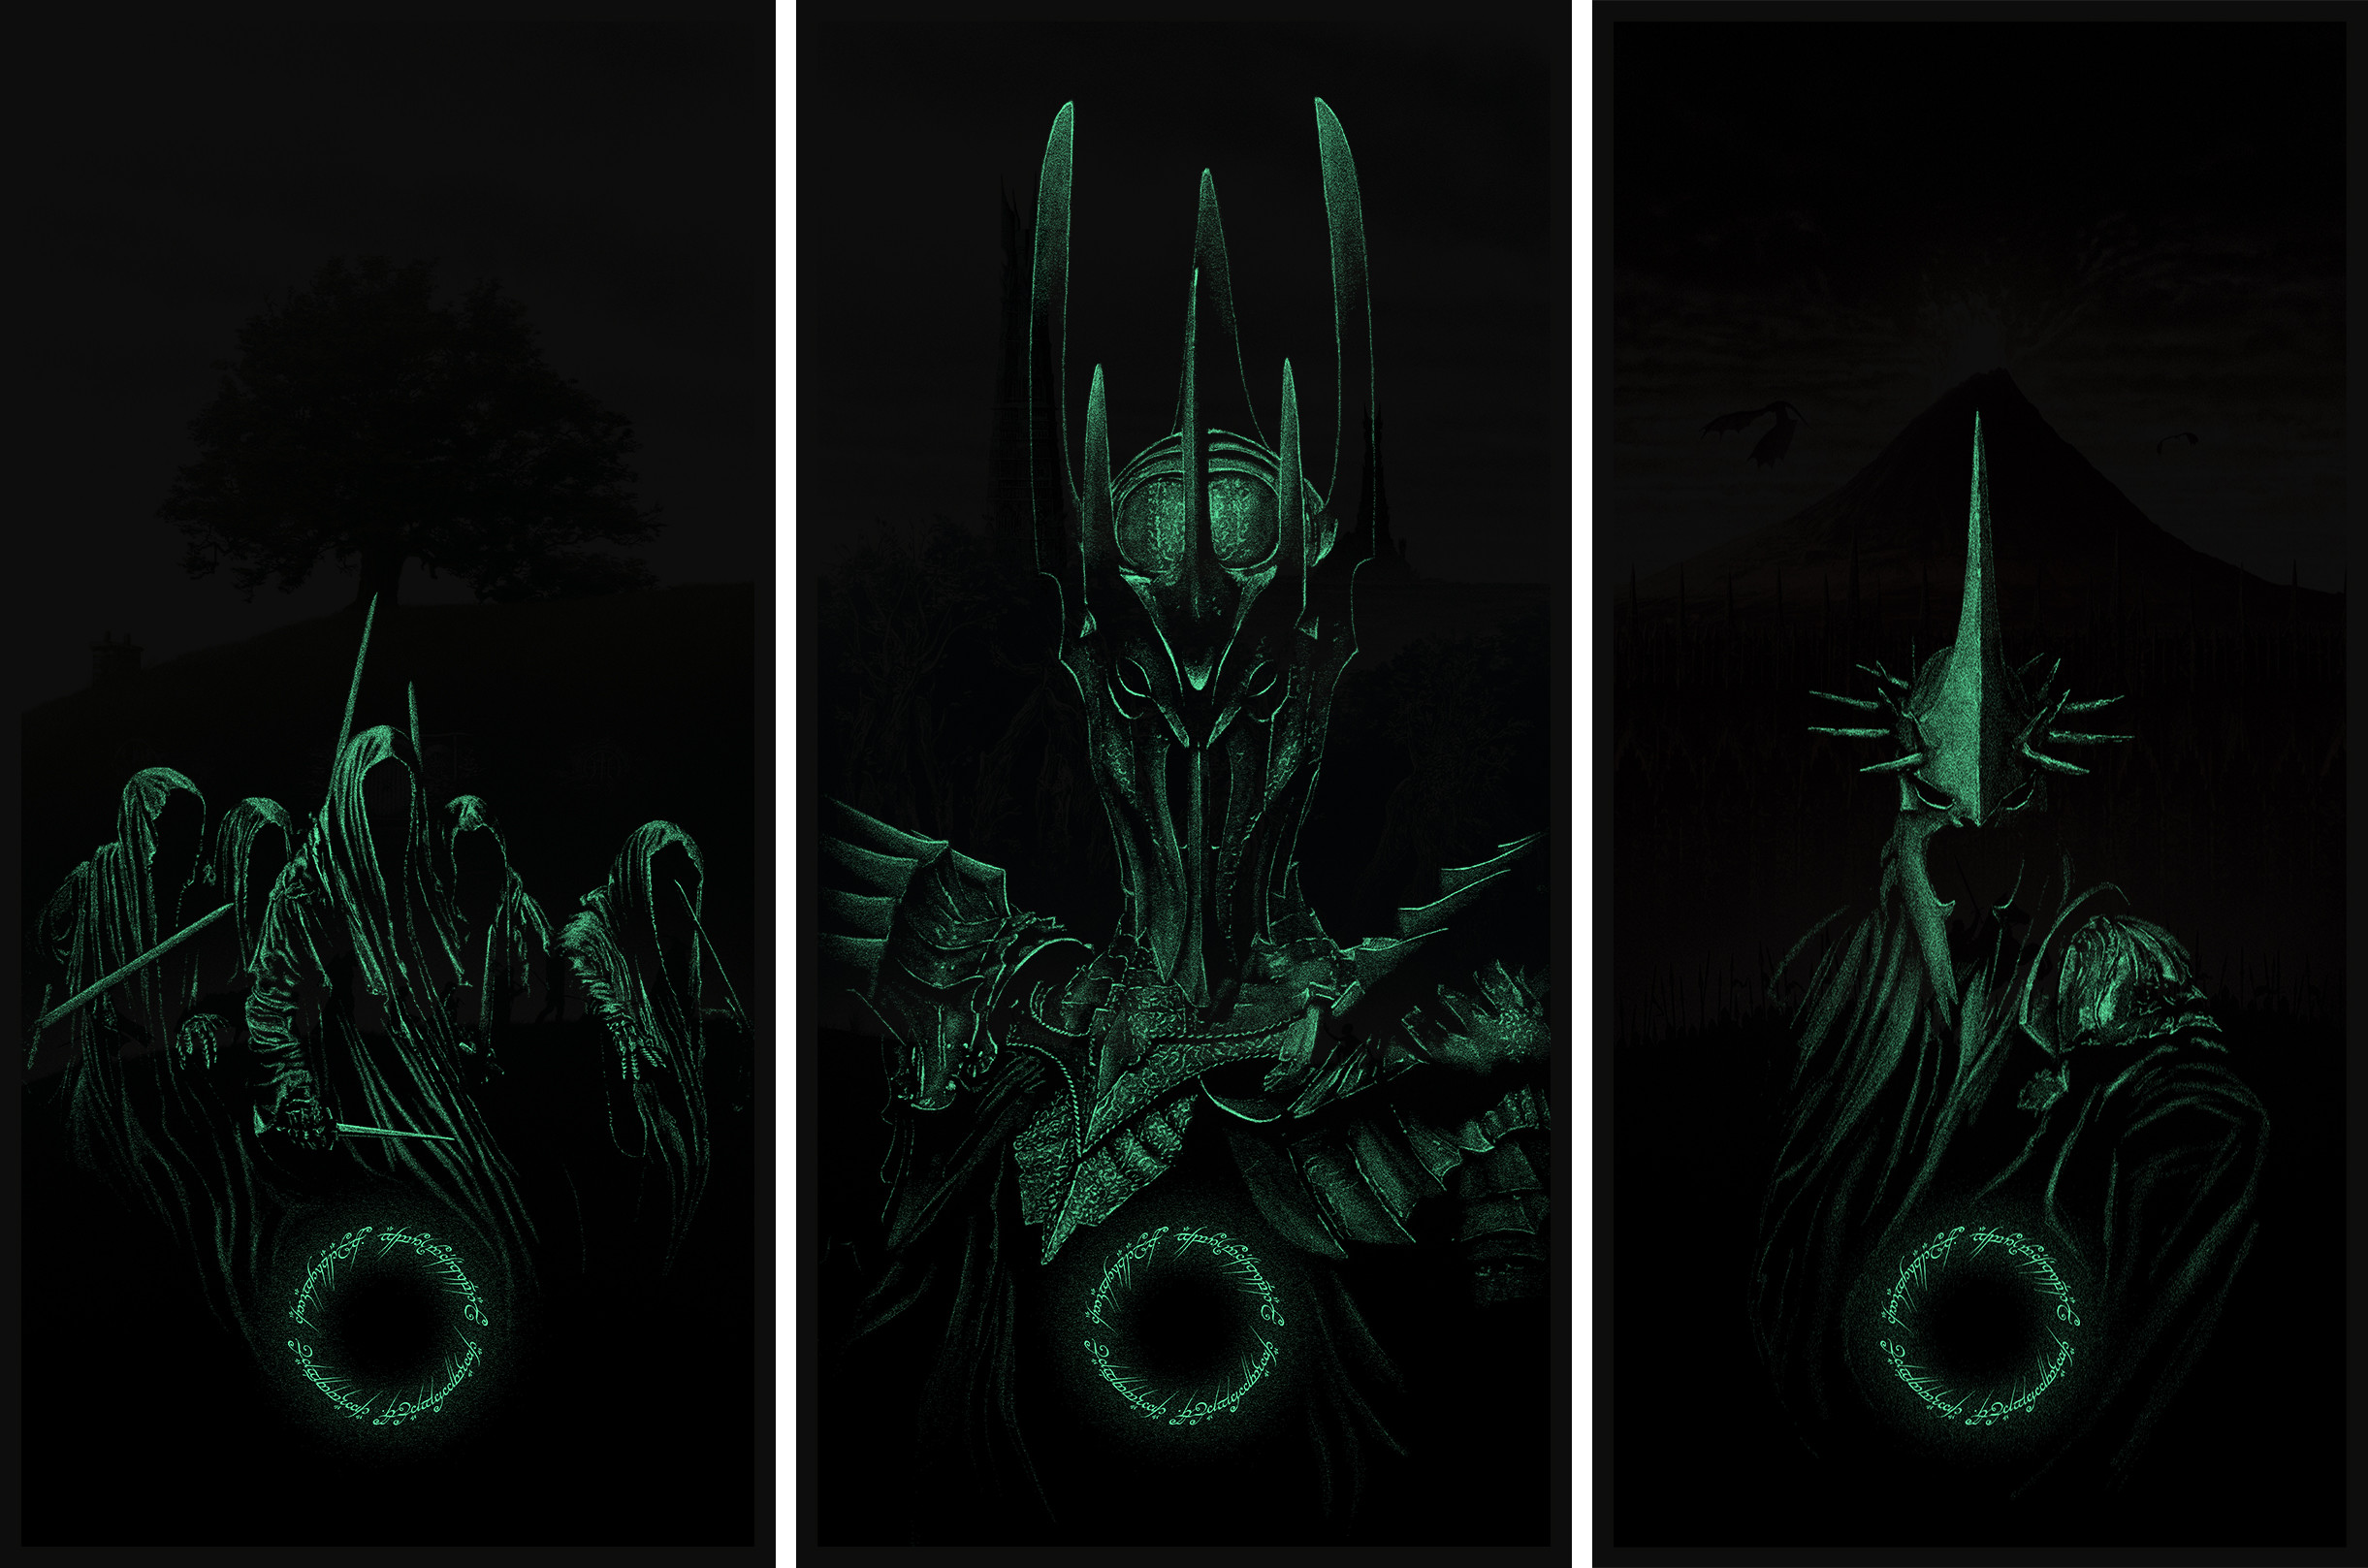 Marko Manev The Lord of the Rings GID Triptych set